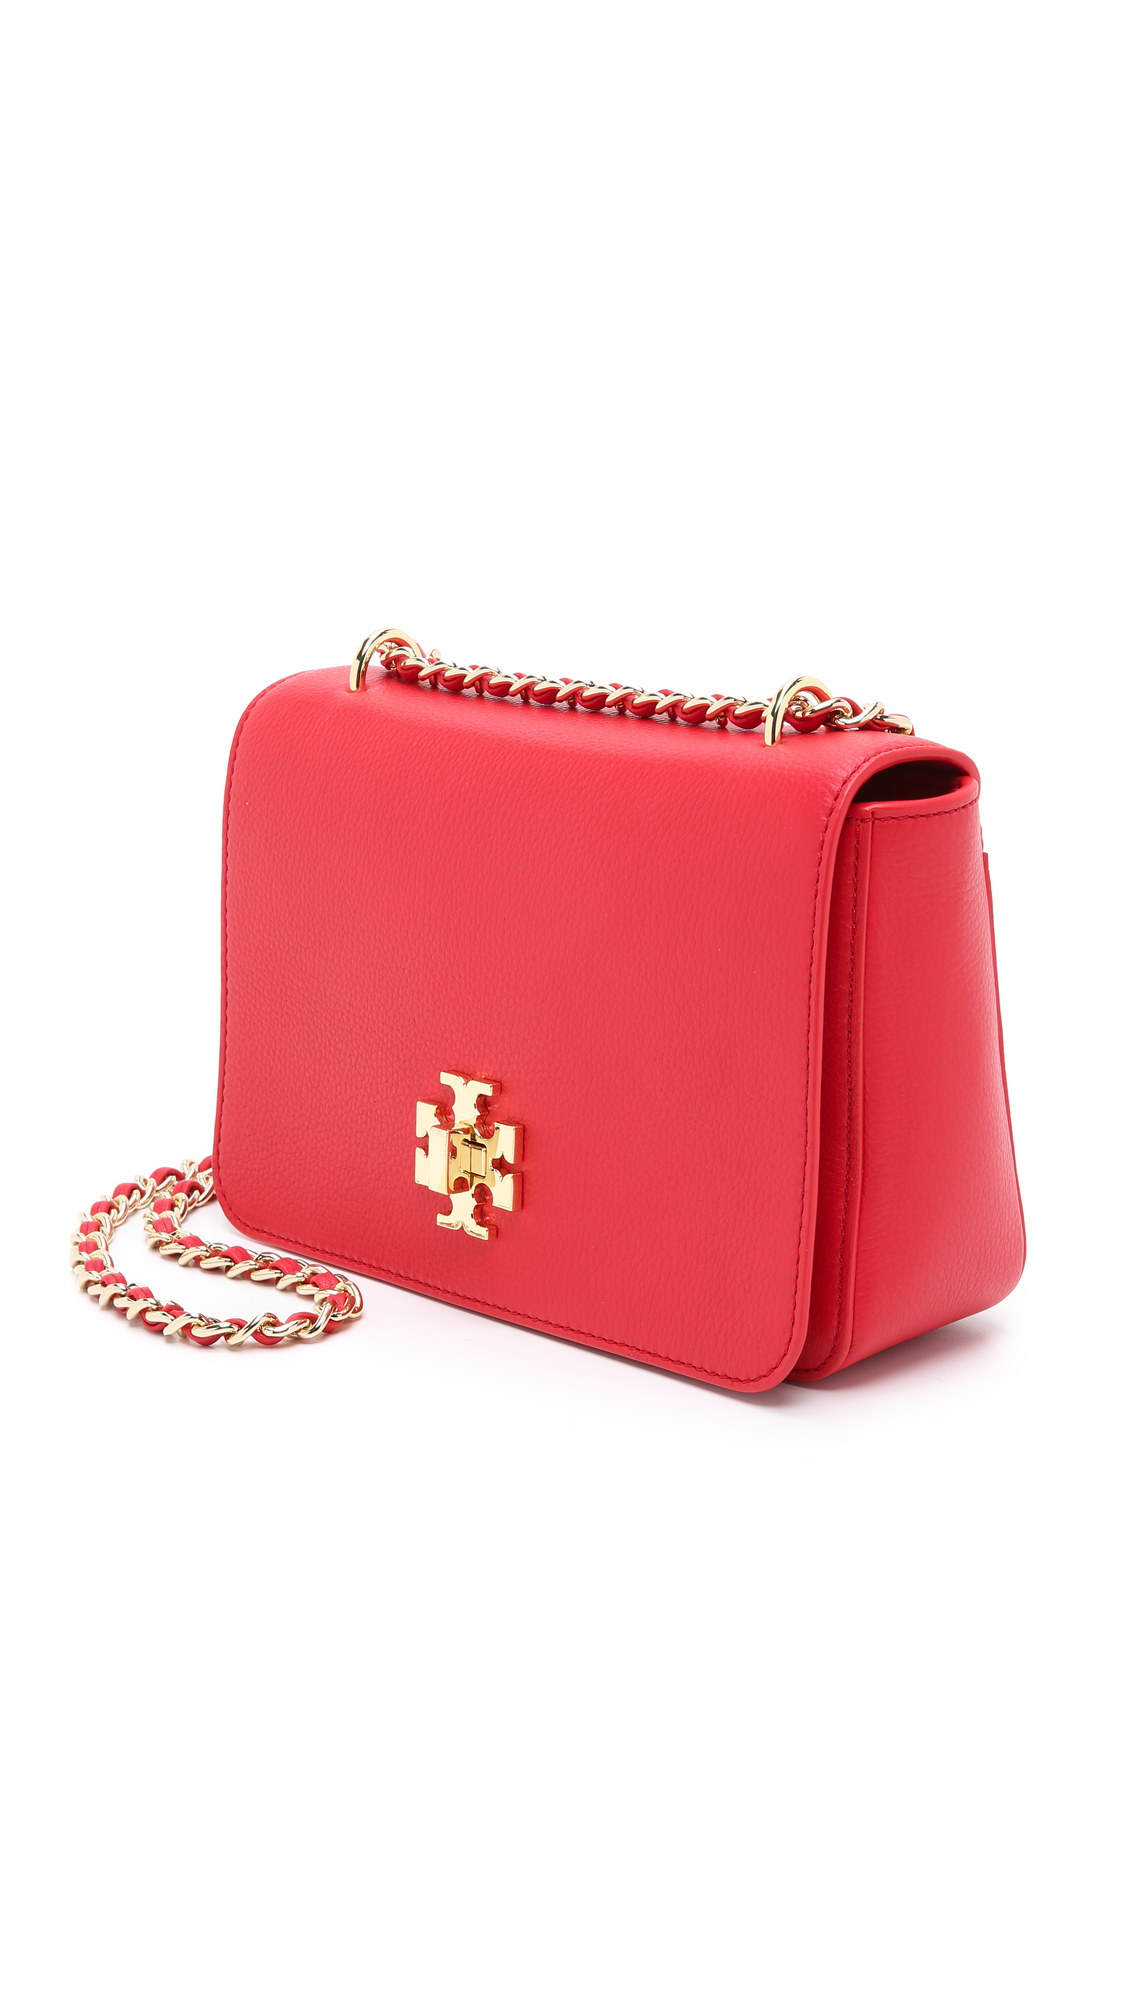 92aa0abe8 Lyst - Tory Burch Mercer Adjustable Shoulder Bag - Vermillion in Red